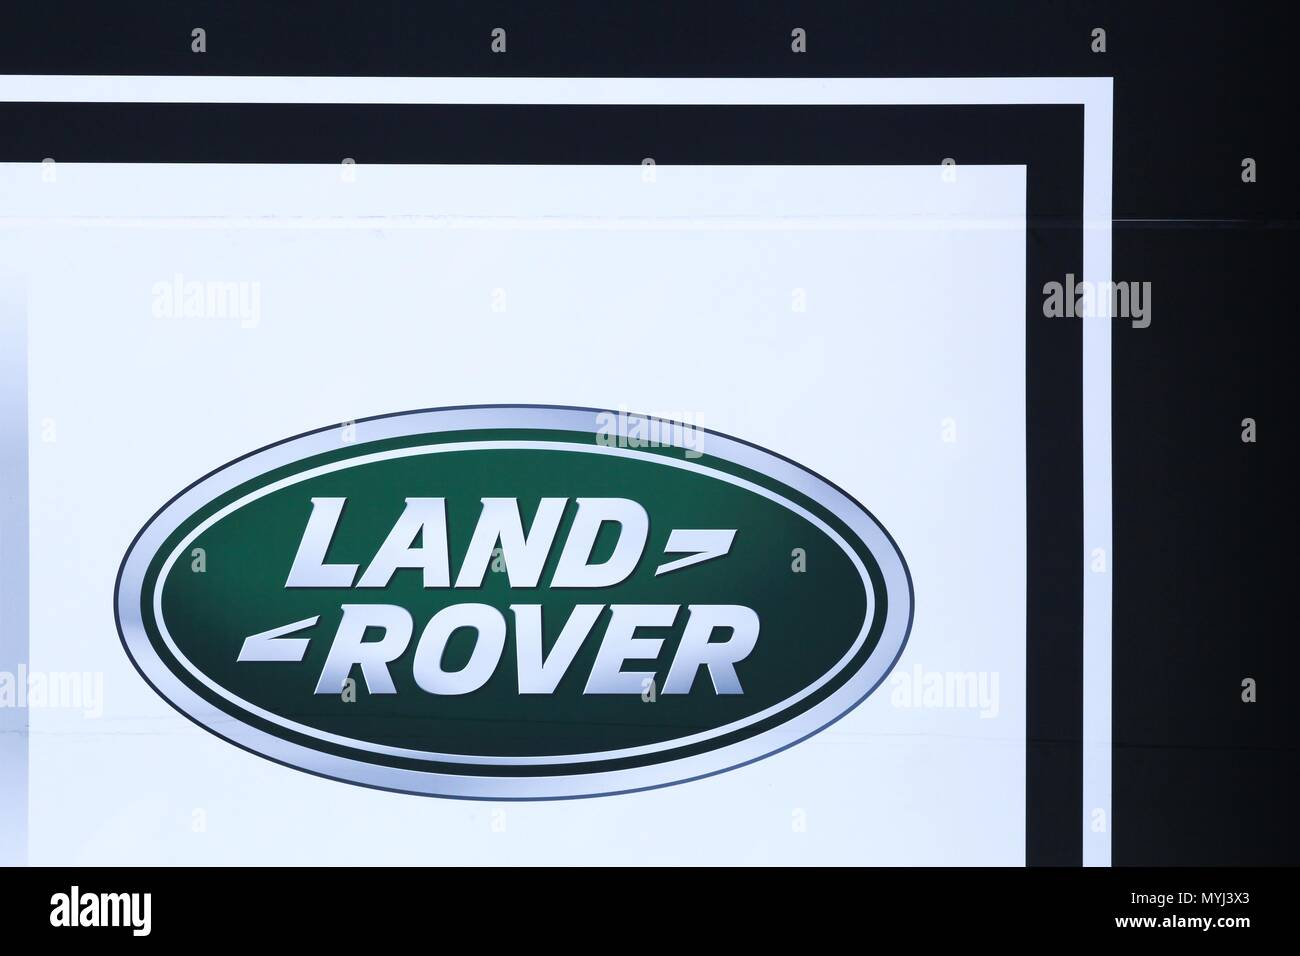 Decines, France - May 24, 2018: Land Rover logo on a wall. Land Rover is a car brand that specialises in four-wheel-drive vehicles, - Stock Image